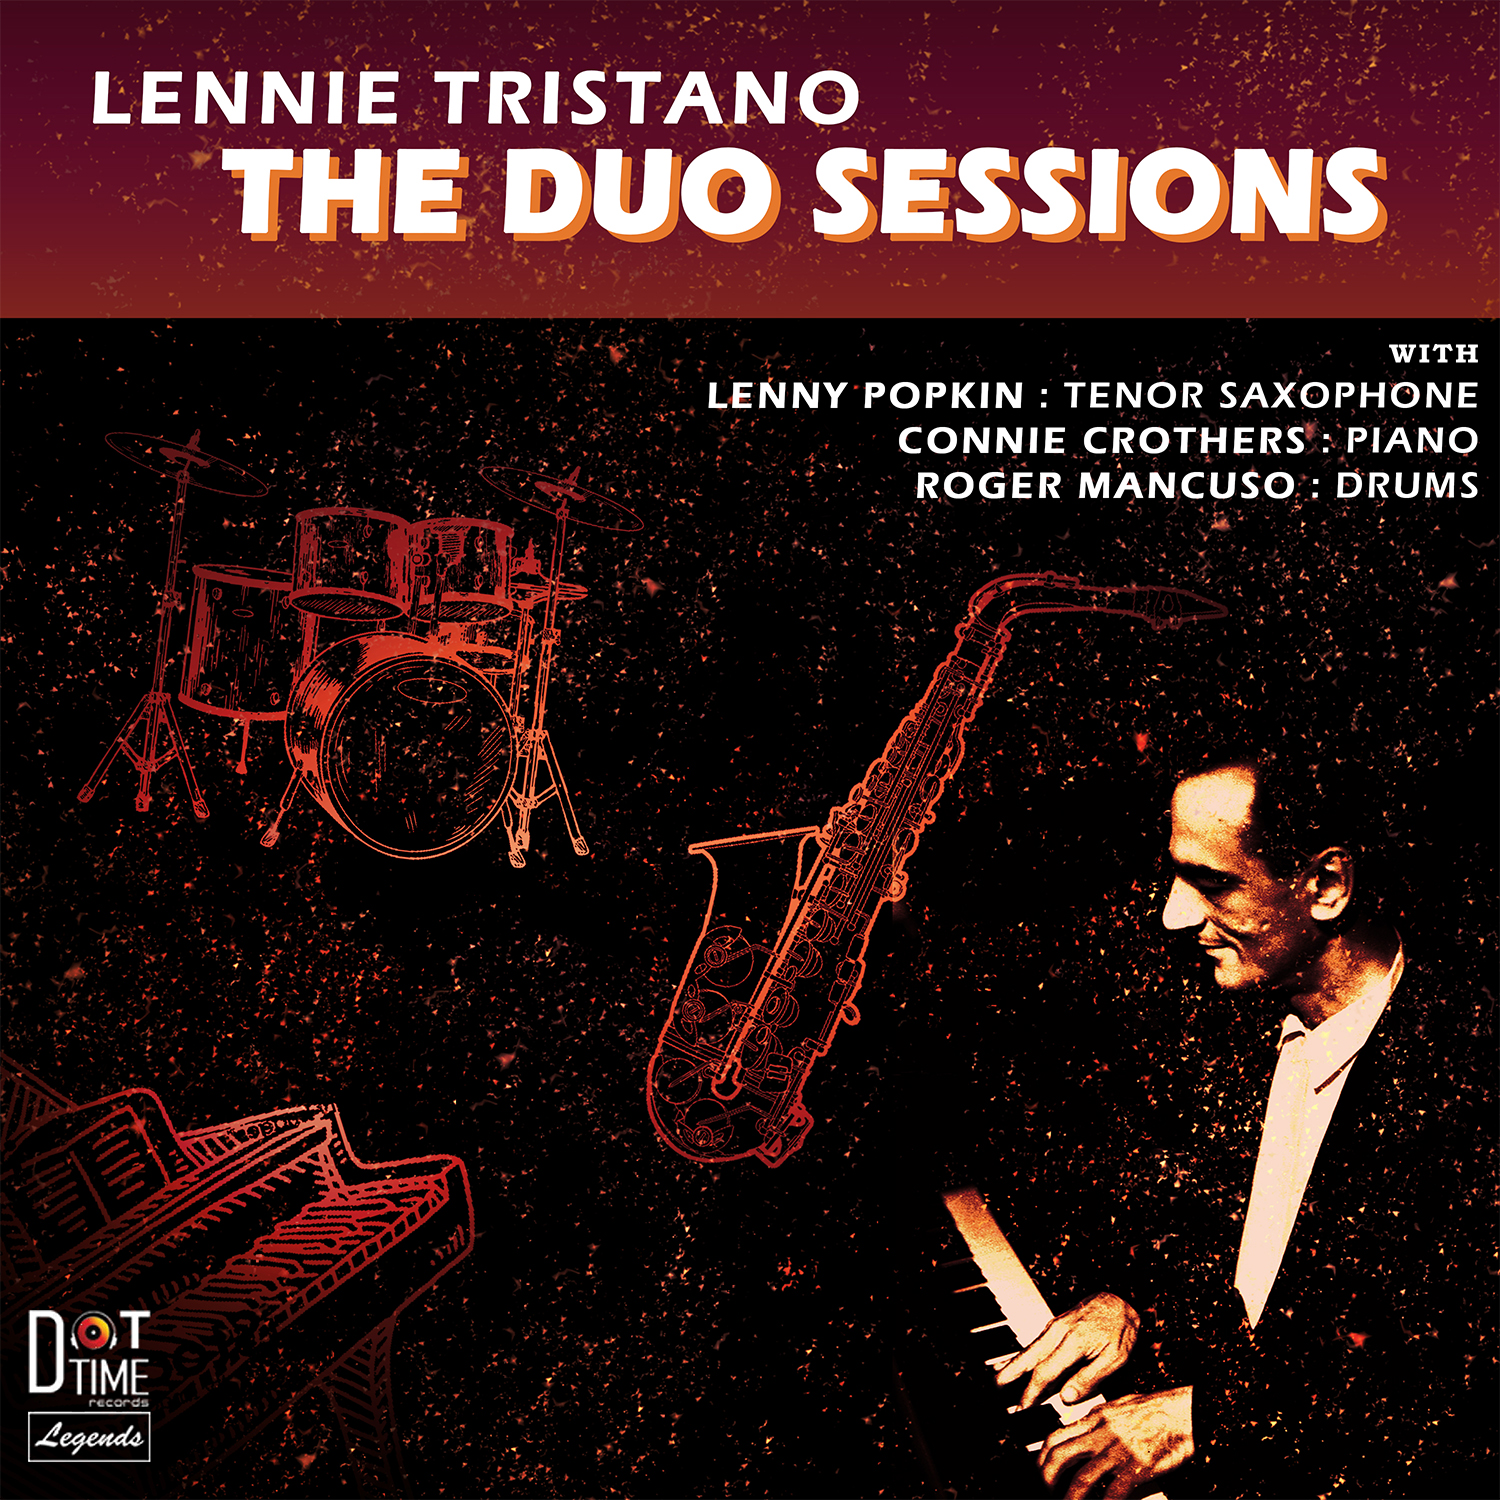 FEATURE: Lennie Tristano: The Duo Sessions – Jazz Weekly